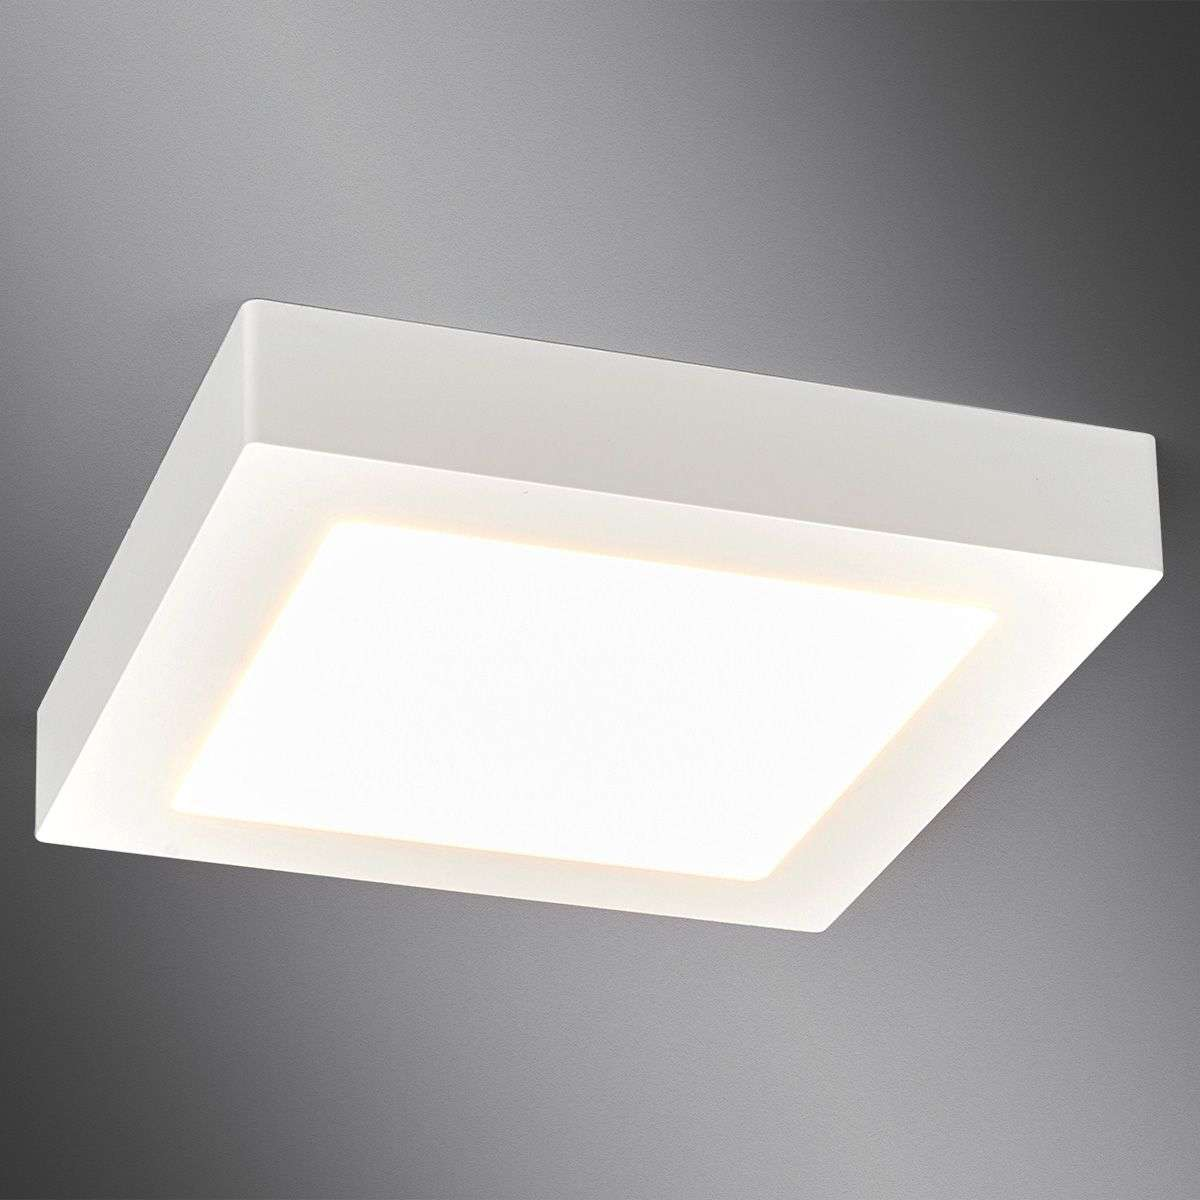 white square led bathroom ceiling light rayan. Black Bedroom Furniture Sets. Home Design Ideas